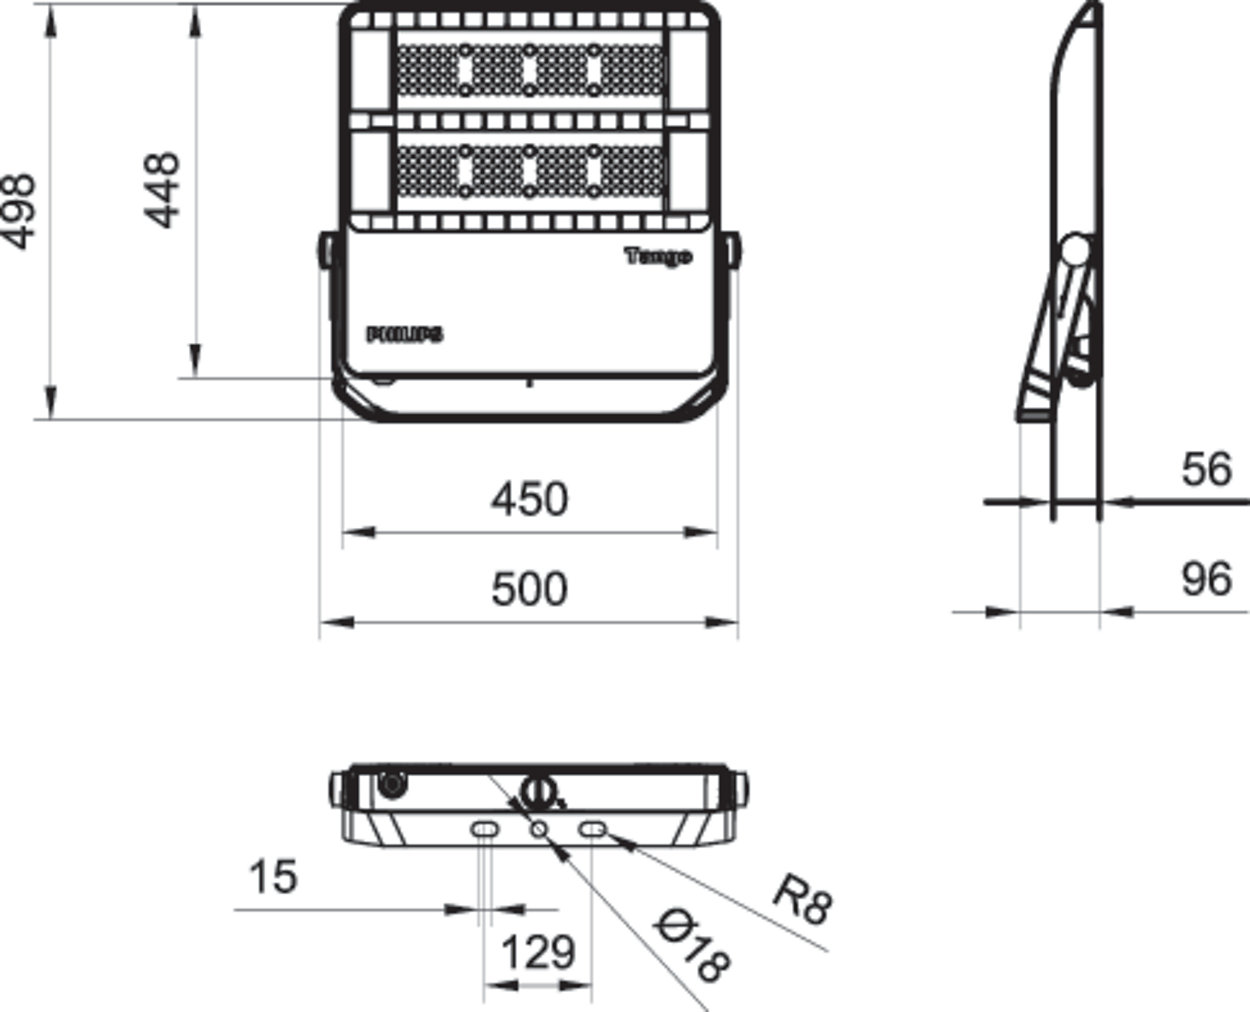 Bvp382 Led144 Nw 120w 220 240v Swb Gm Tango G3 Bvp38x Philips For Case 448 Wiring Diagram Excellent Area Lighting Within Your Budget